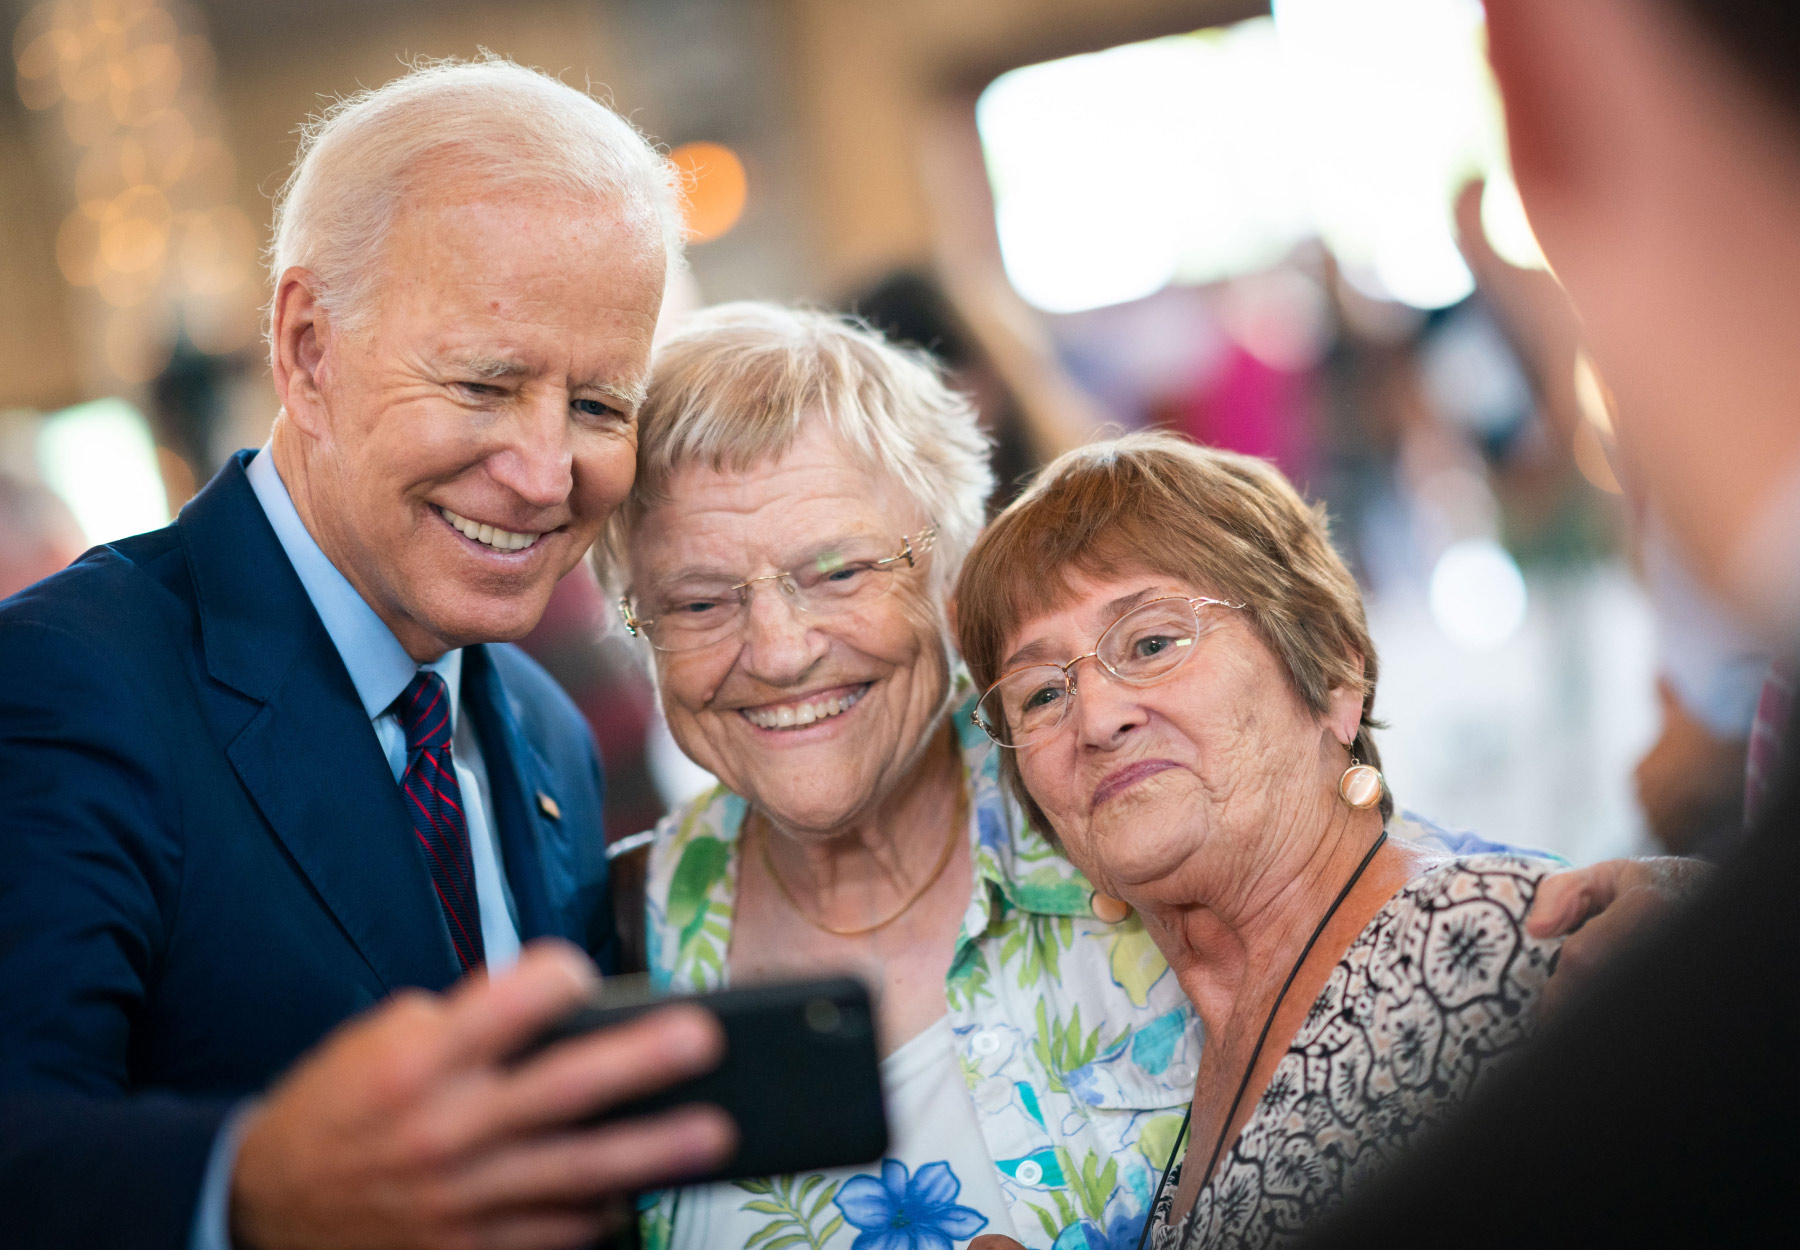 President Joe Biden takes a photo with attendees at an event in Burlington, IA